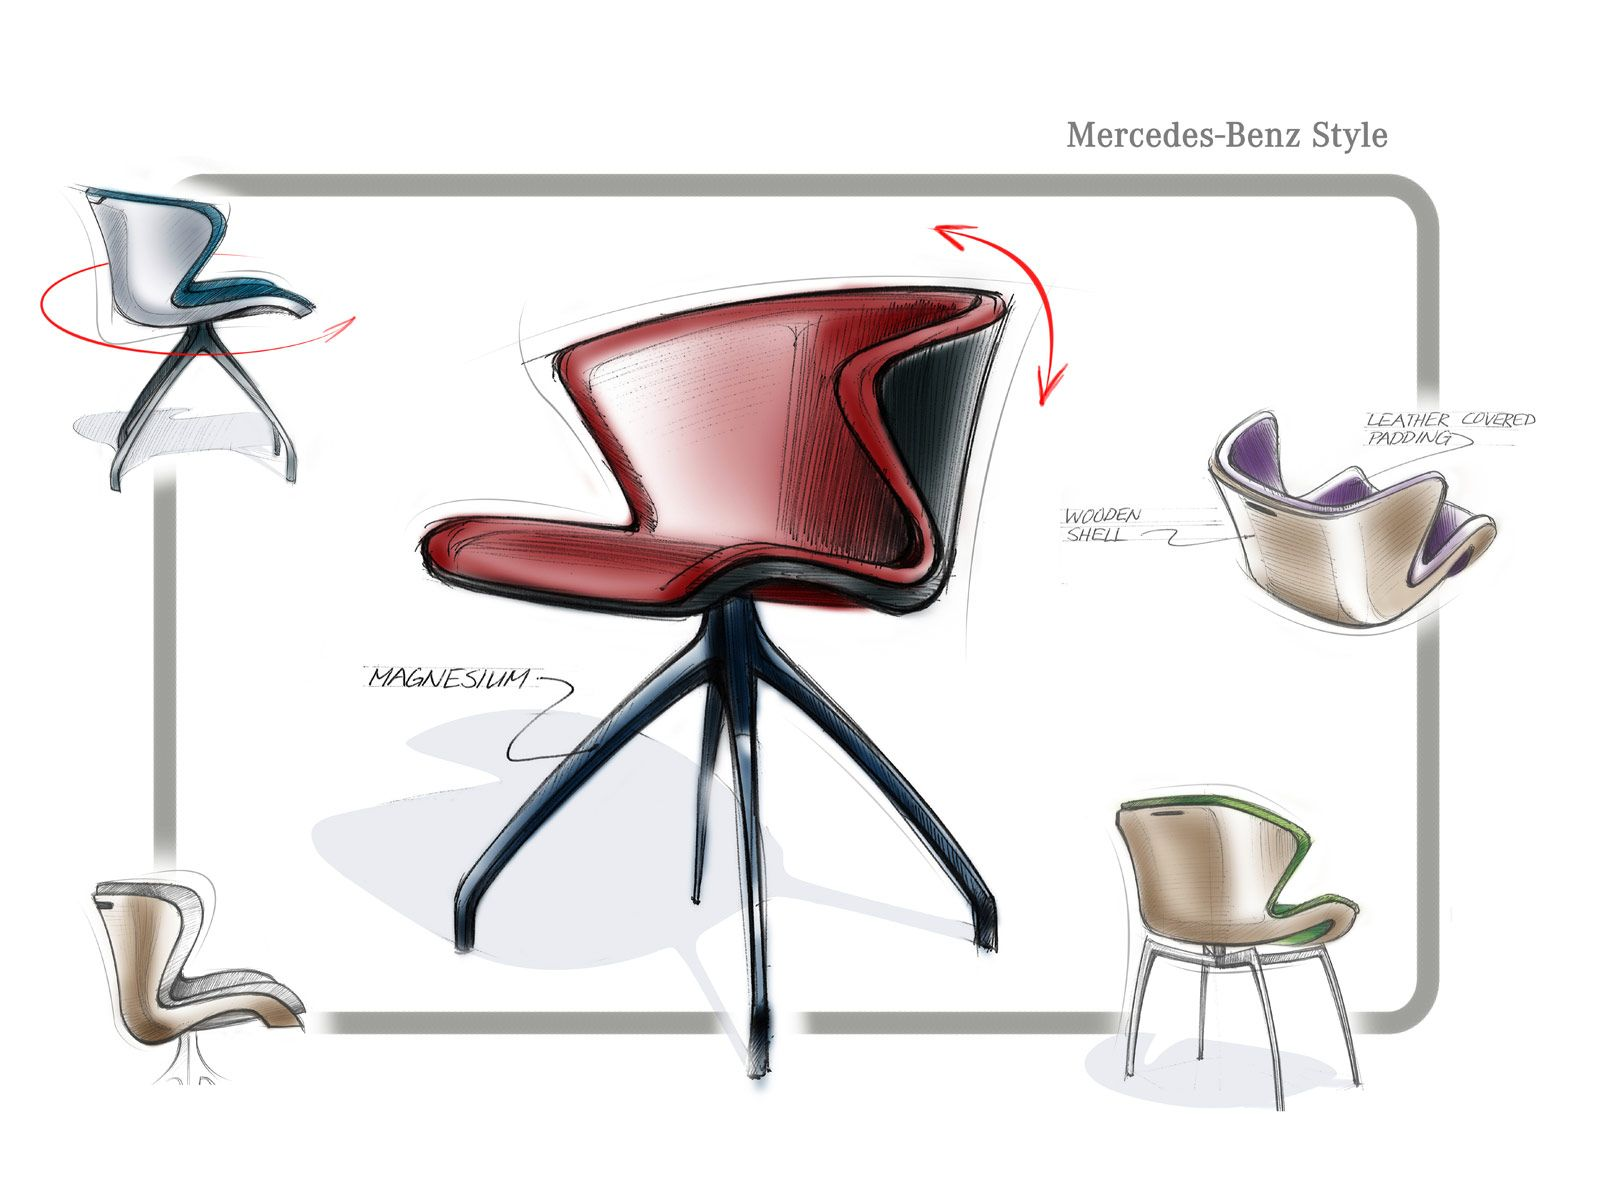 Industrial design sketches furniture - In Collaboration With Formitalia Luxury Group Mercedes Benz Is Launching A High End Highly Stylized Line Of Furniture